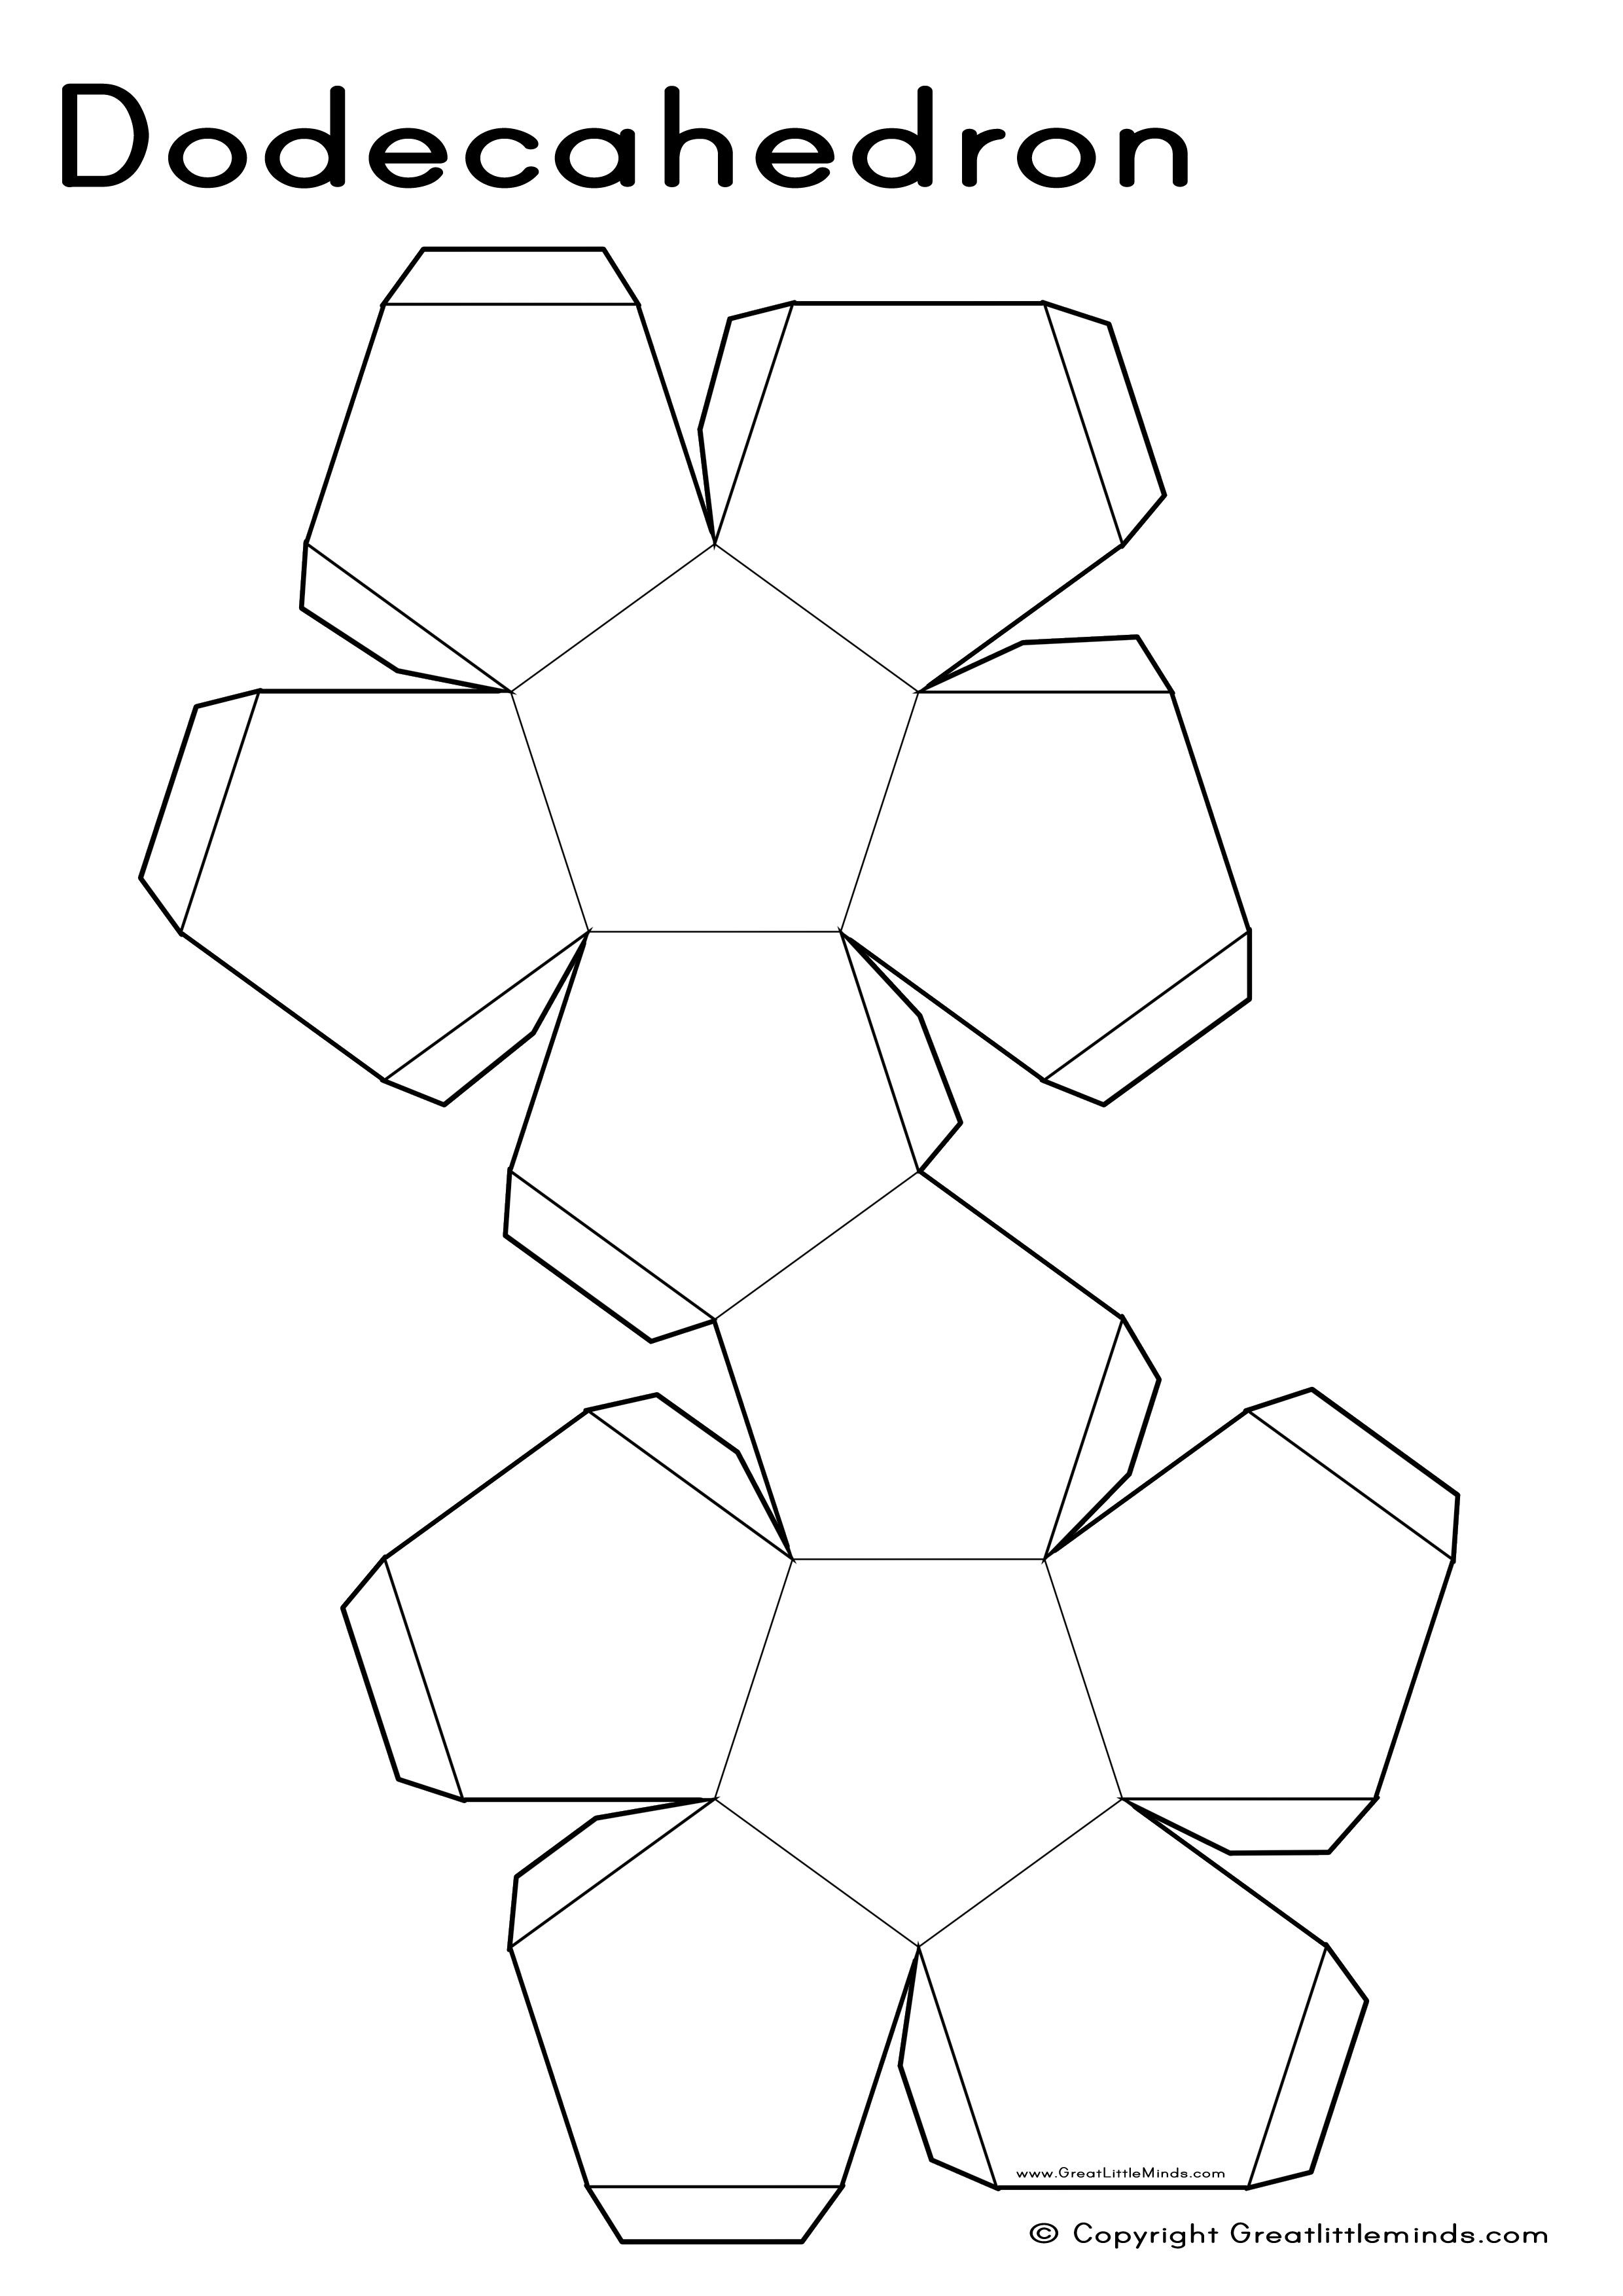 phantom tollbooth coloring pages 3d nets dodecahedron a4jpg 24803508 dodecahedron coloring tollbooth pages phantom